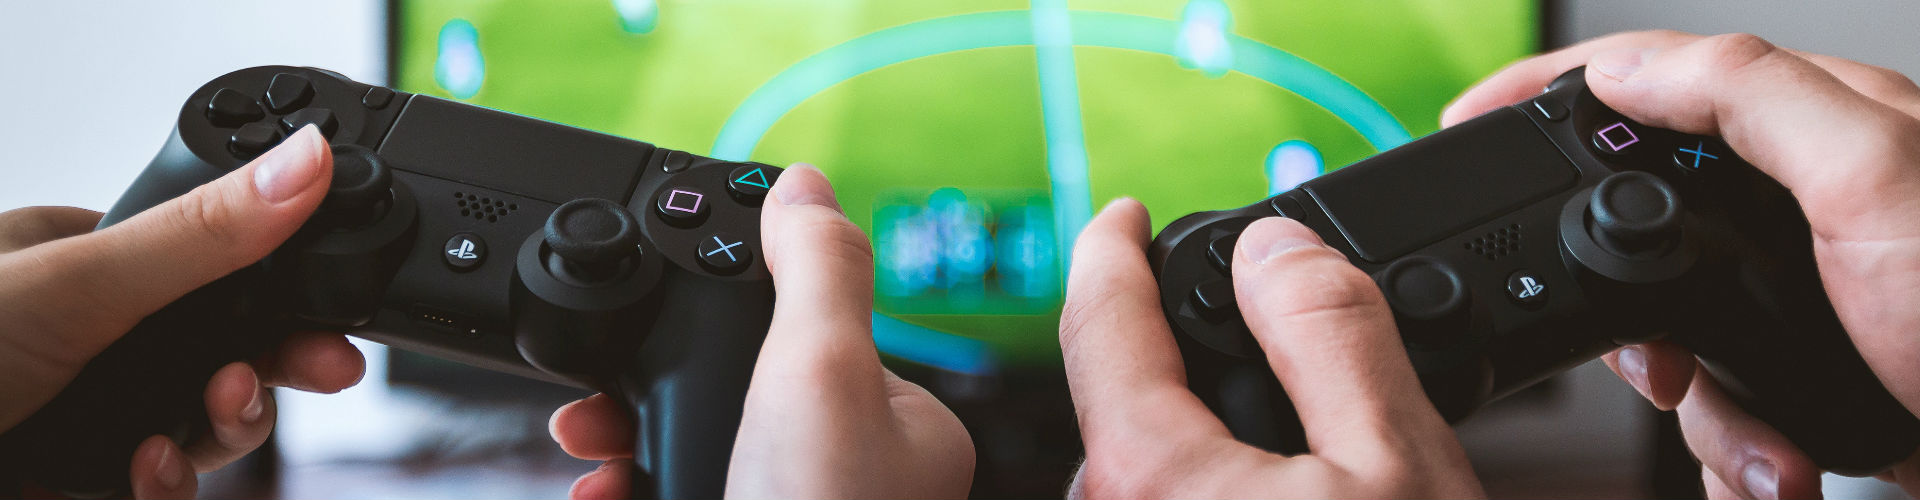 What Will the Future of Gaming Look Like?